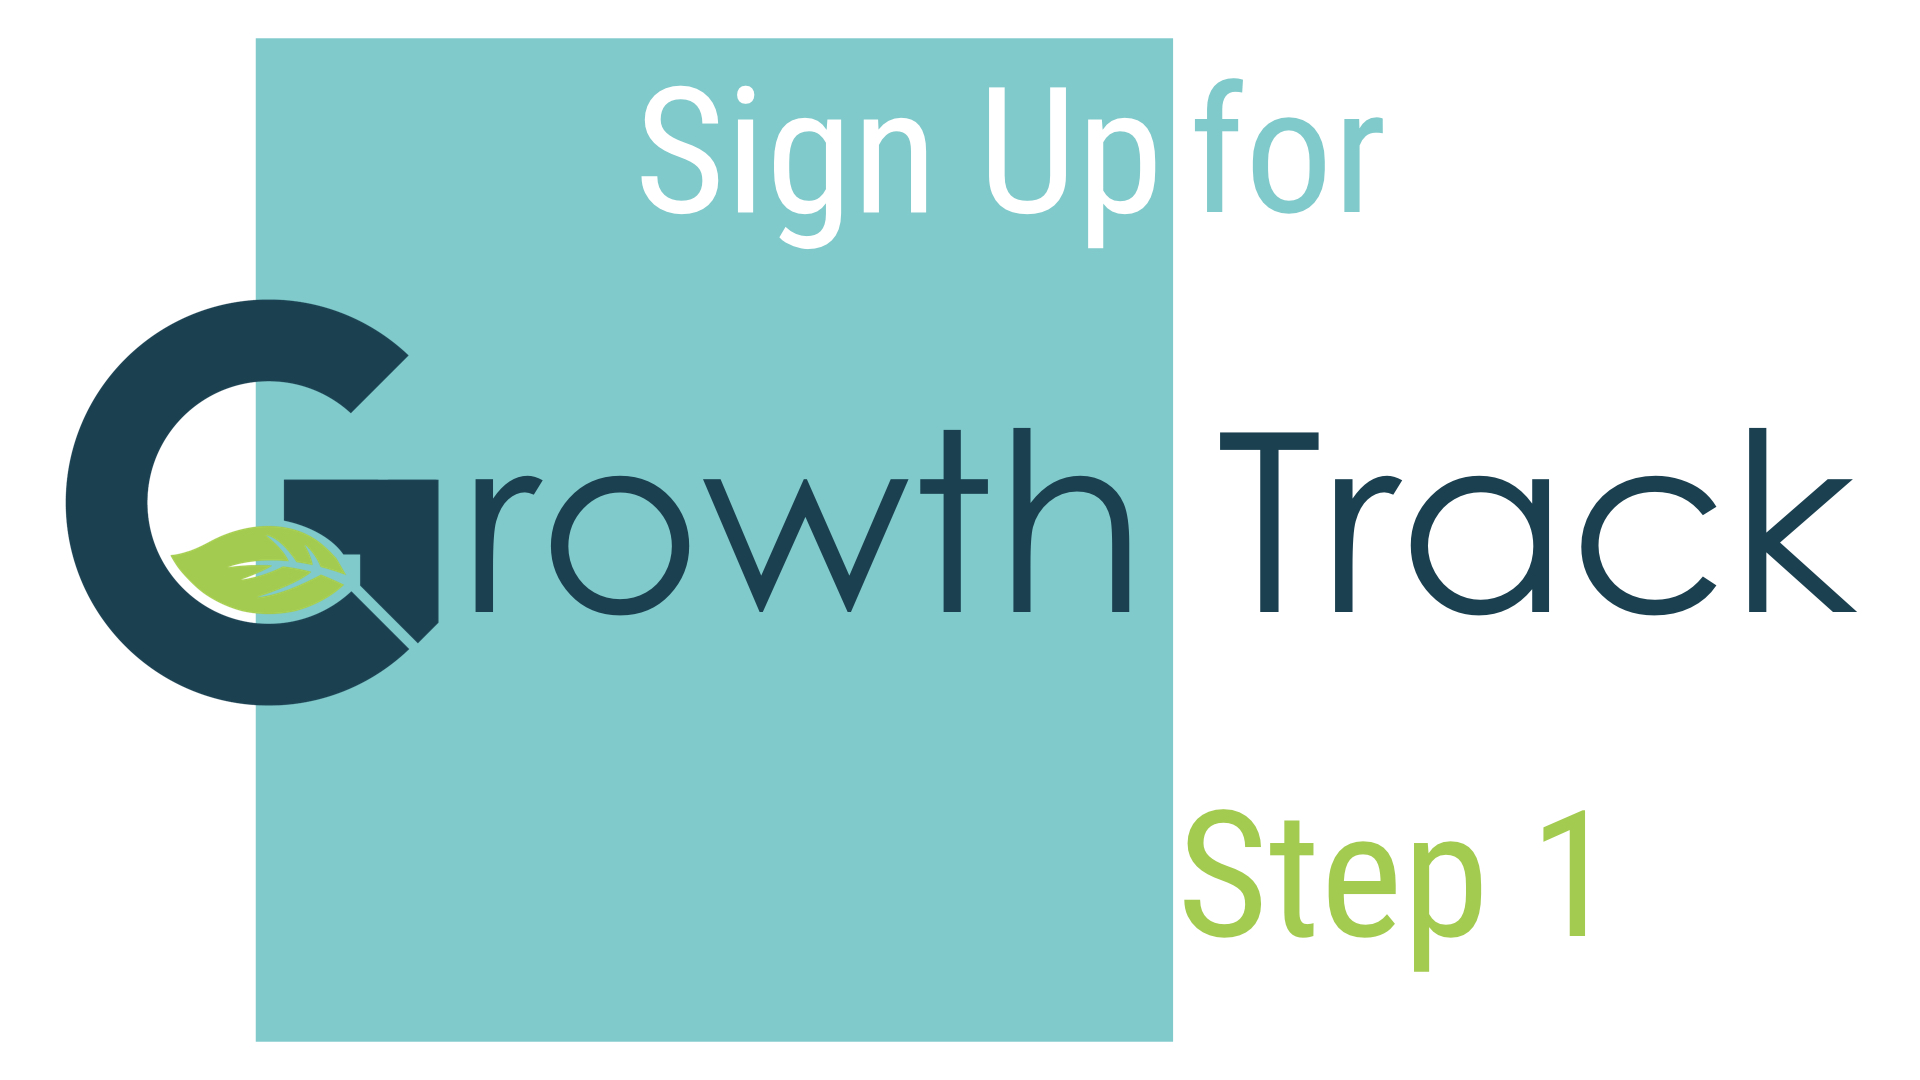 Growth track slides jpeg   step 1 sign up